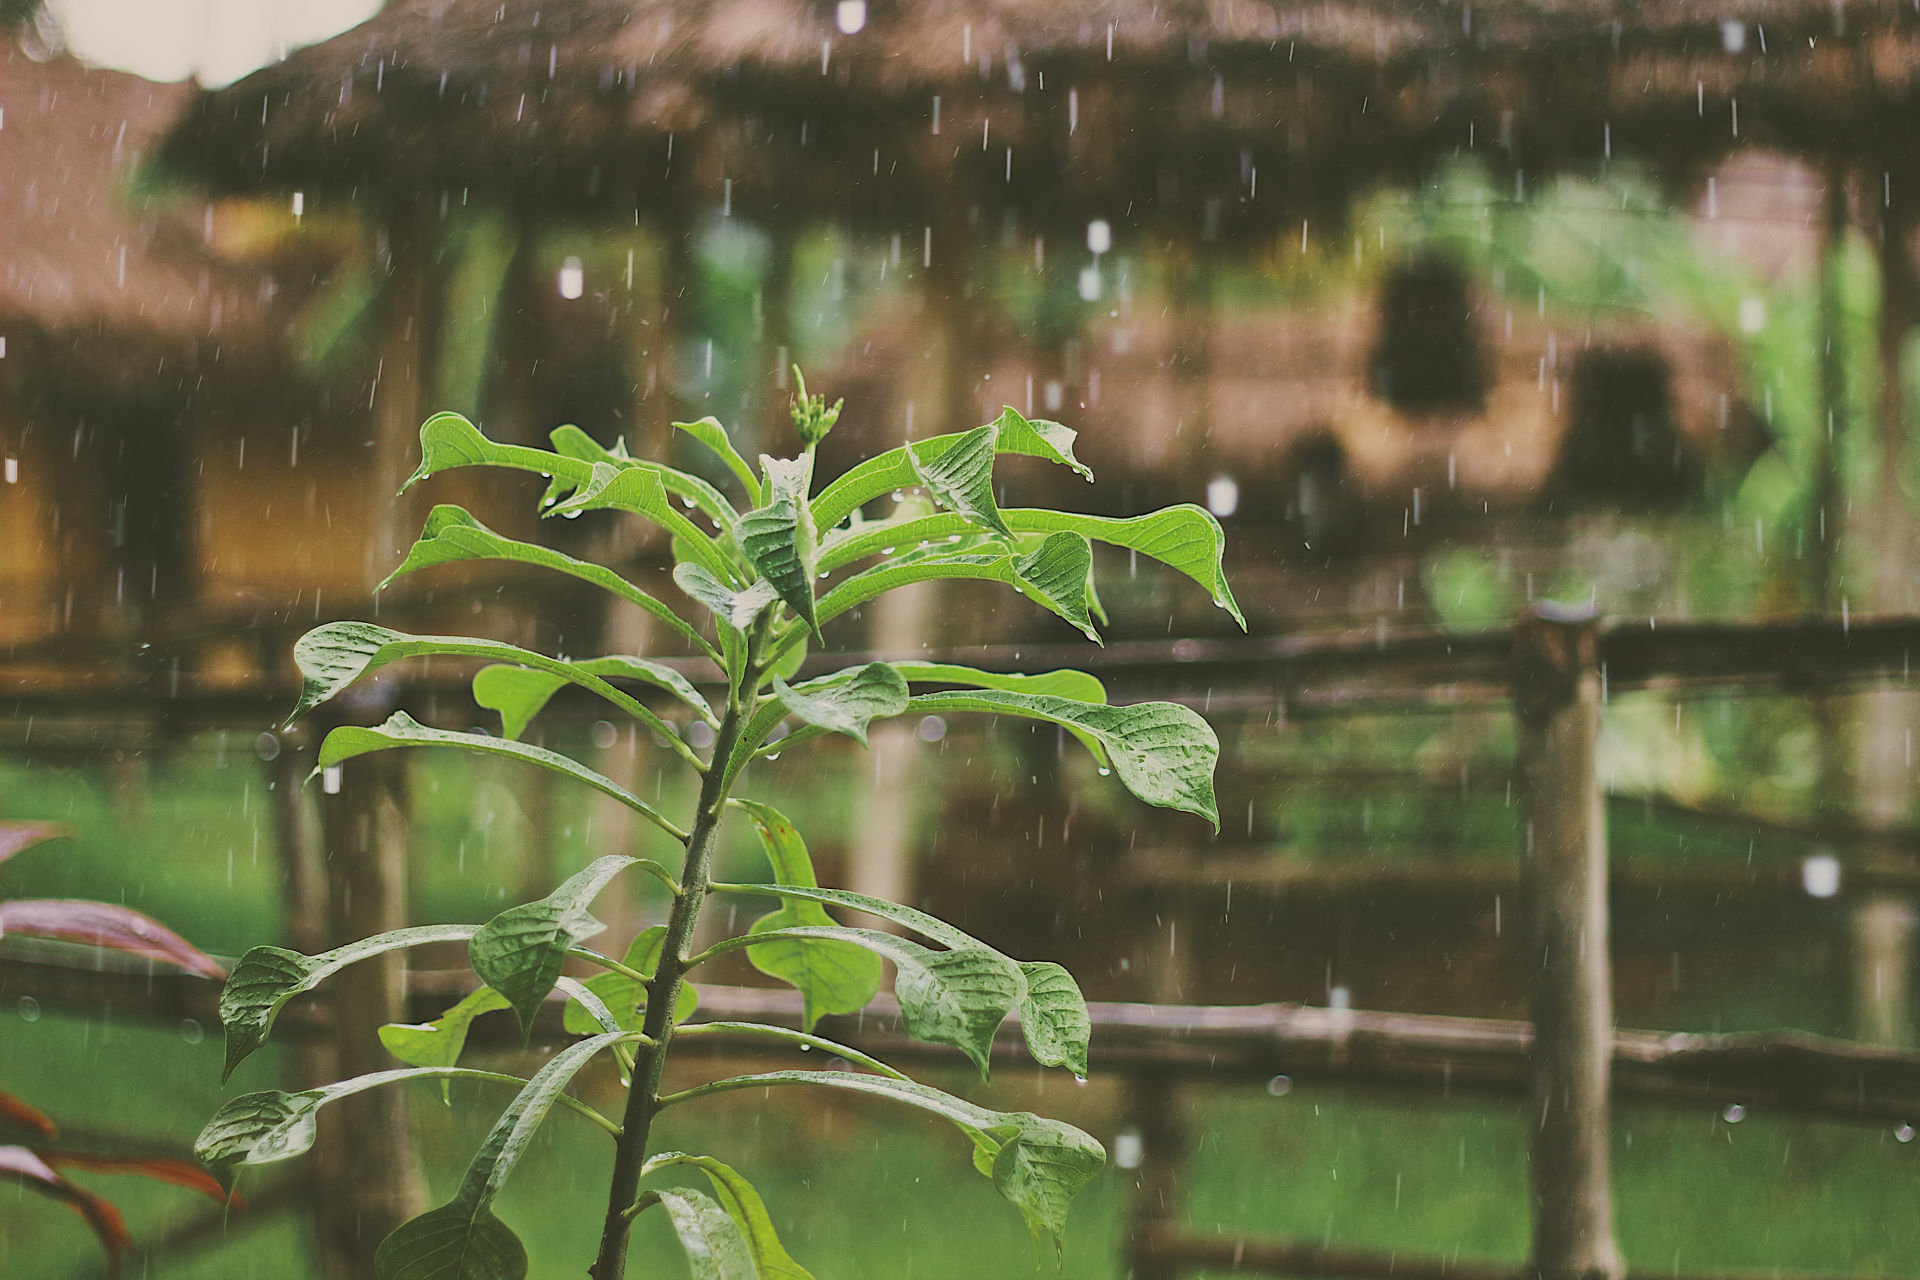 During Lent 2015, EcoChurch Southwest is promoting a Carbon Fast, focusing on water. You can sign up to daily emails containing an action, bible reading and reflection. I wrote about rain as a blessing for today's reflection. Photo credit: Mike Kotsch on Unsplash.